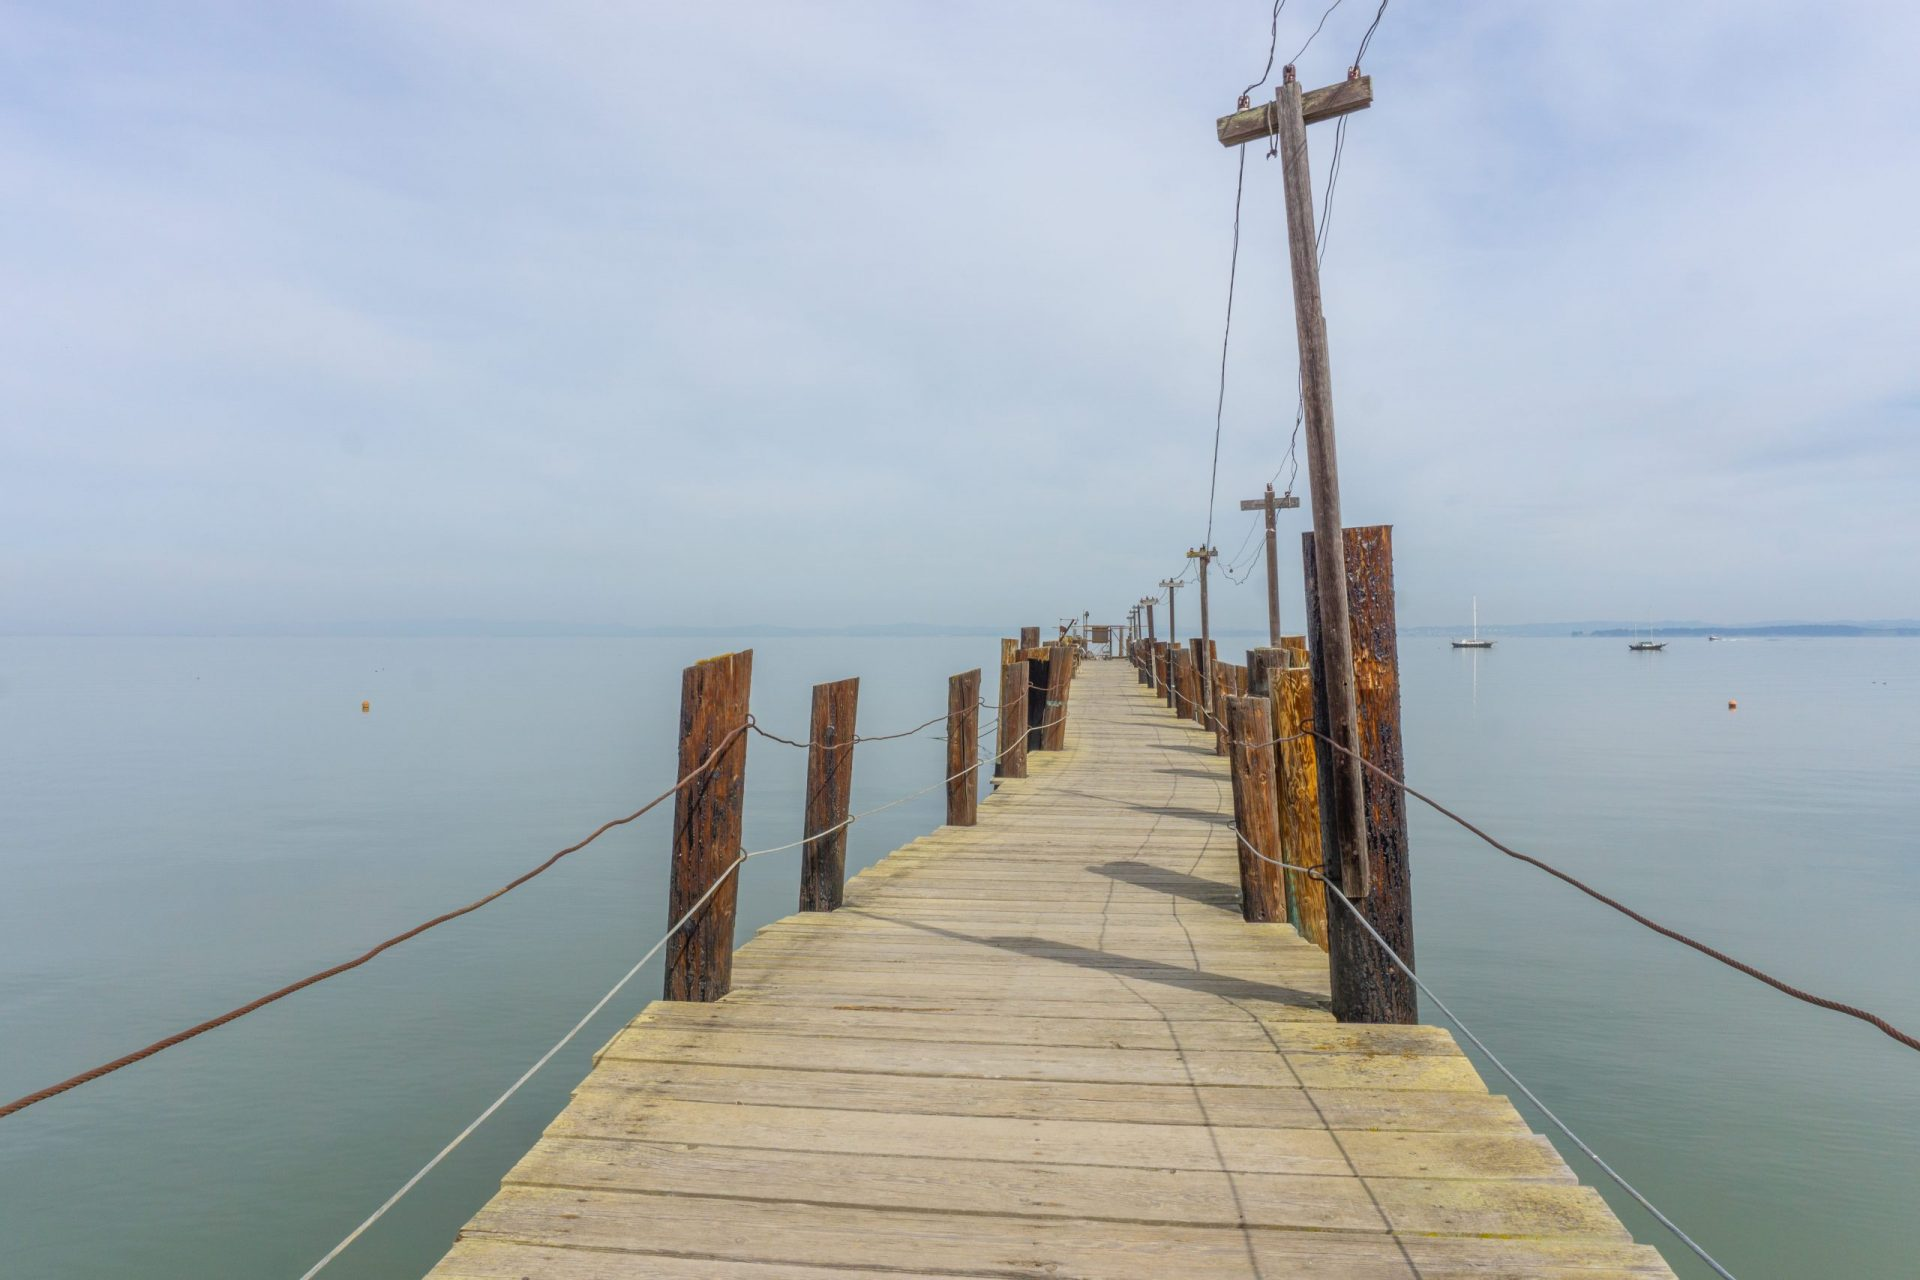 wooden pier with cable railings going straight over water